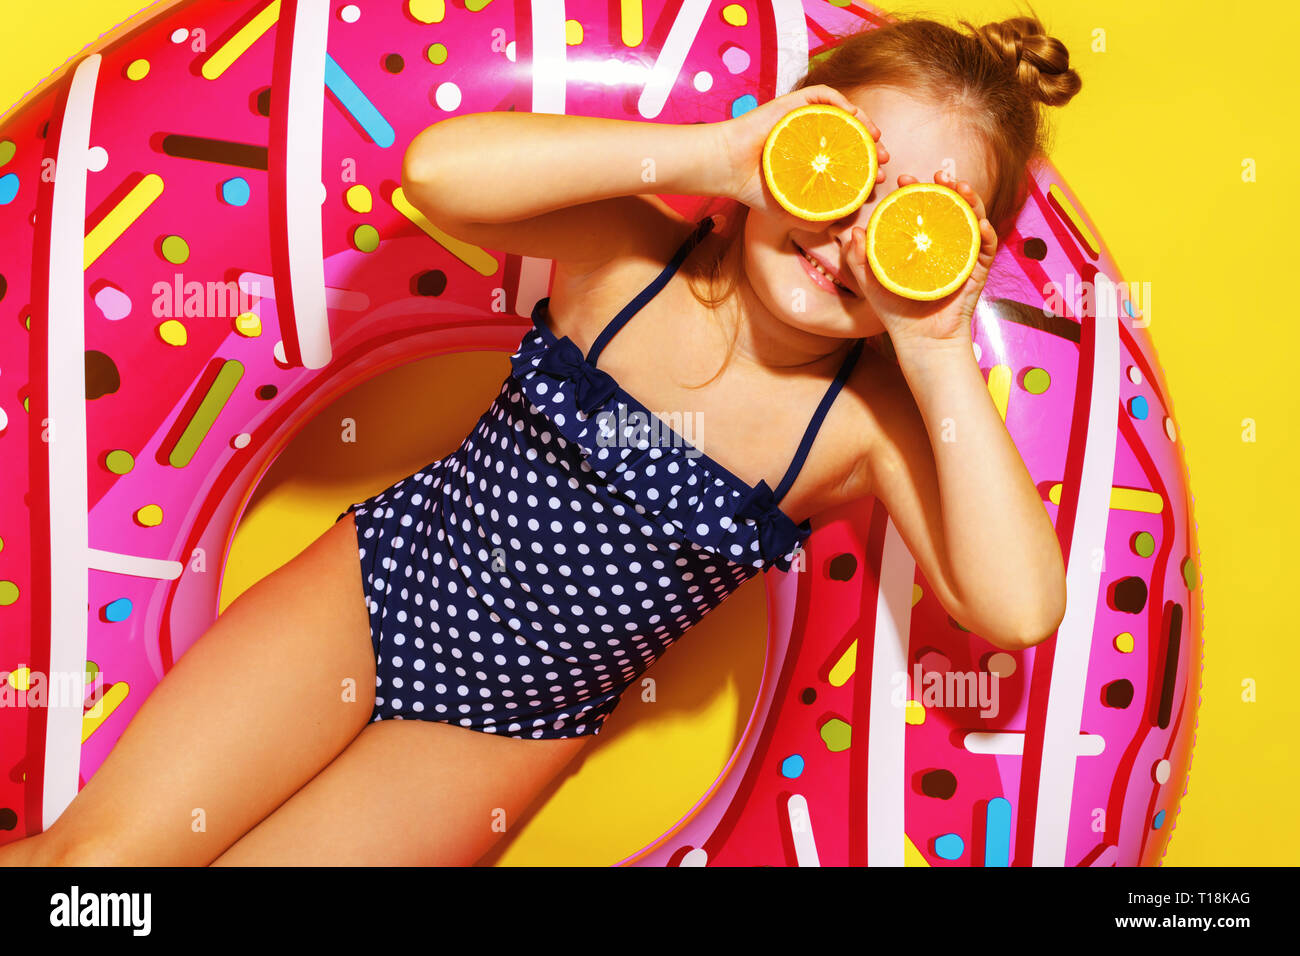 A little child girl in a swimwear suit lying on a donut inflatable circle. Yellow background. Top view. Summer concept. Closeup. - Stock Image